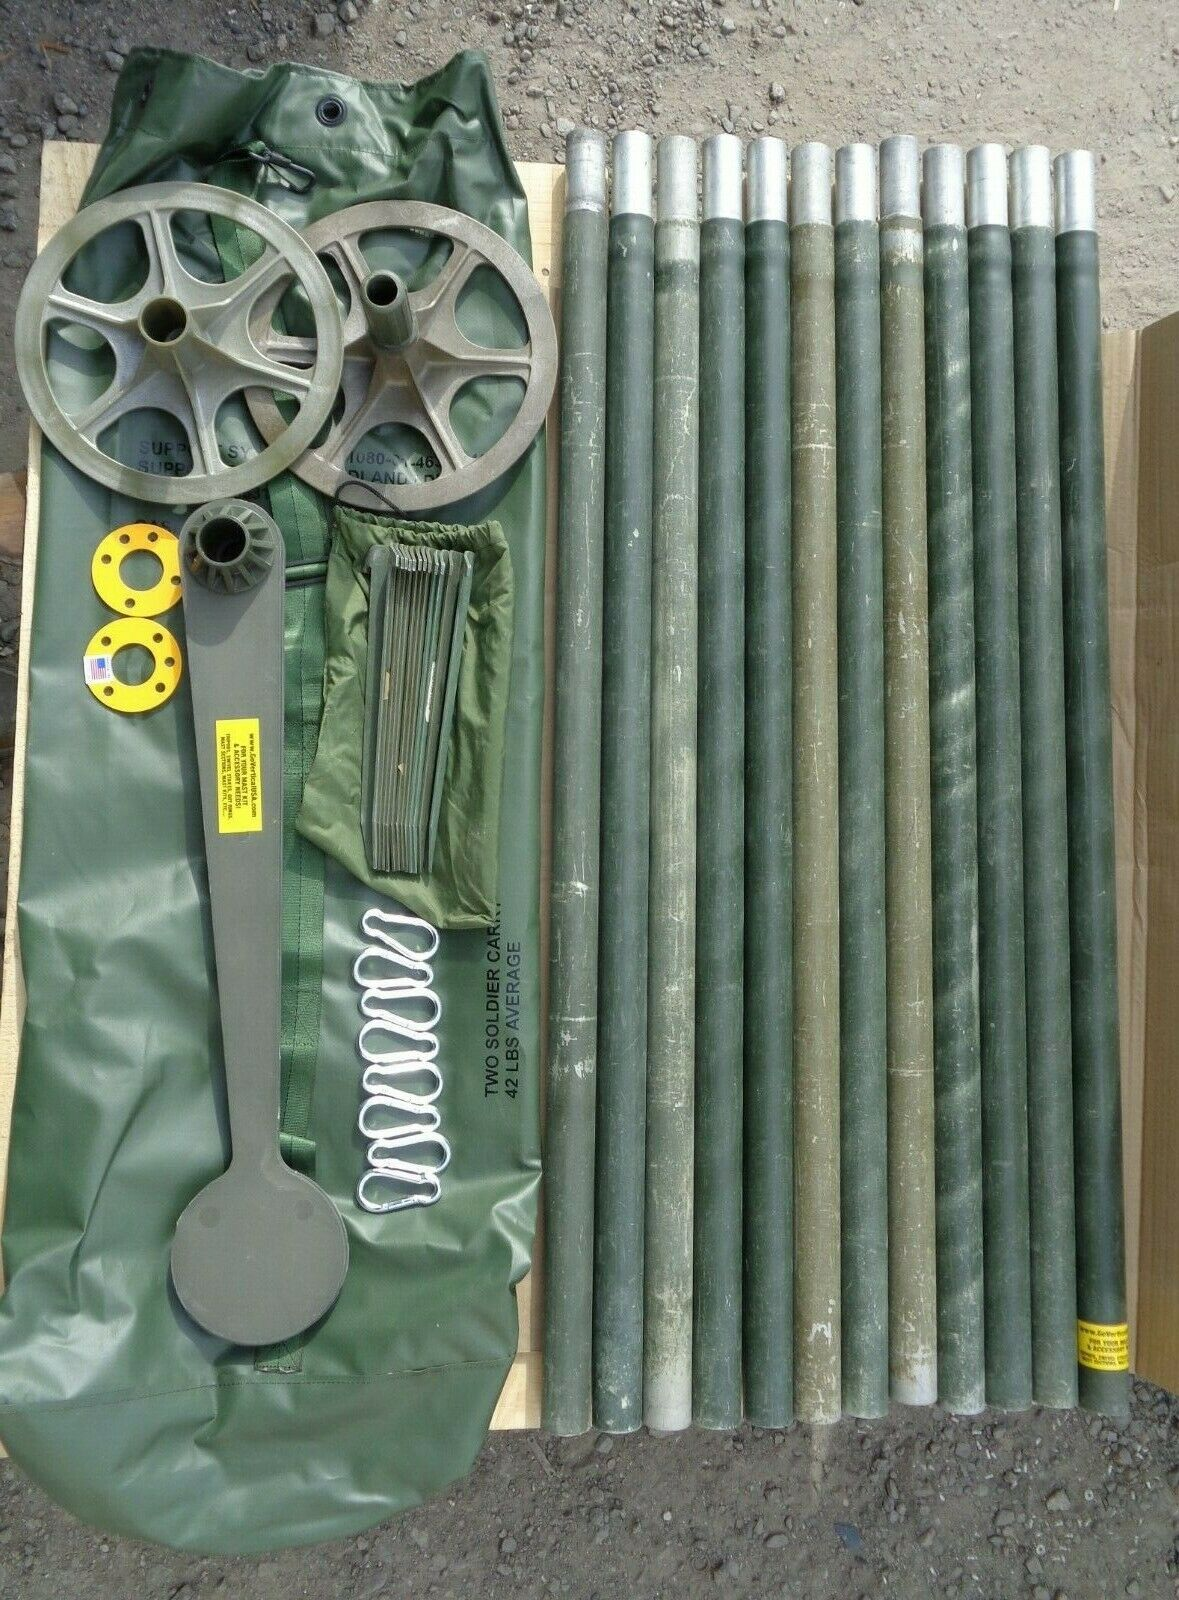 MILITARY USED SMOOTH 4' ALUMINUM ANTENNA TOWER MAST SECTION ECONOMY MAST KIT V2C. Available Now for 174.95